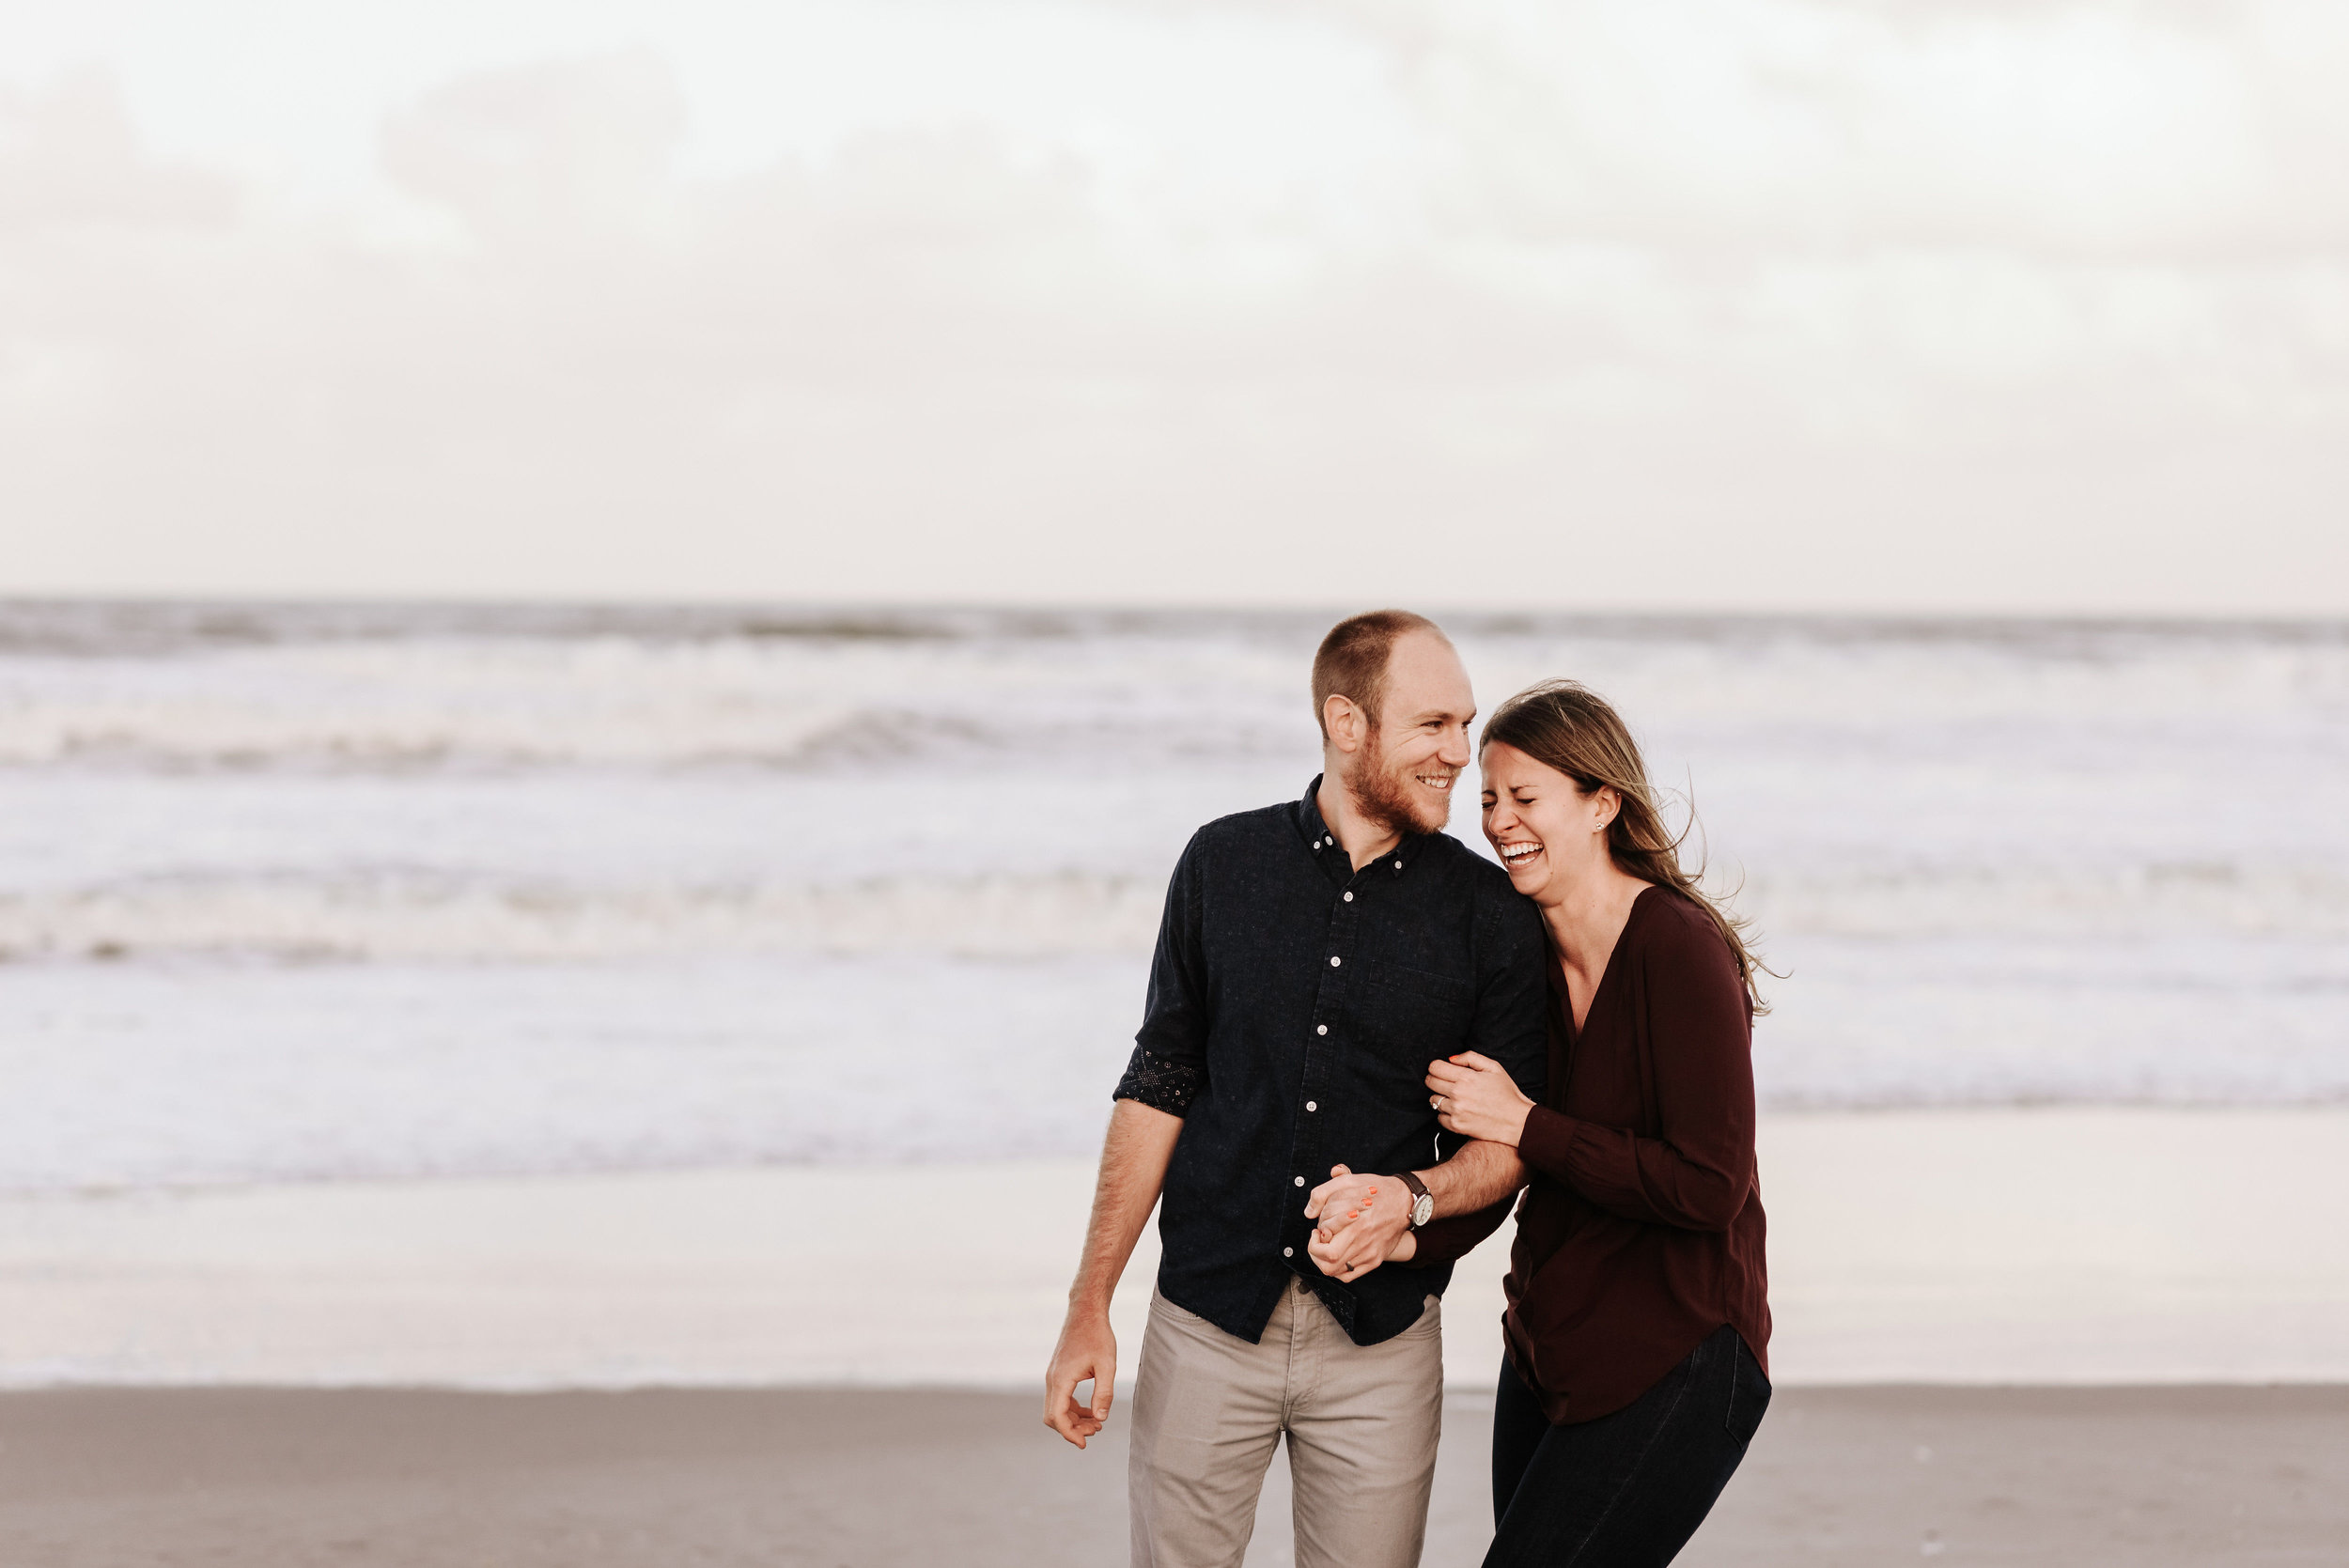 Courtney_Luke_Wedding_Engagement_Session_Cocoa_Beach_Florida_Photography_by_V_4653.jpg